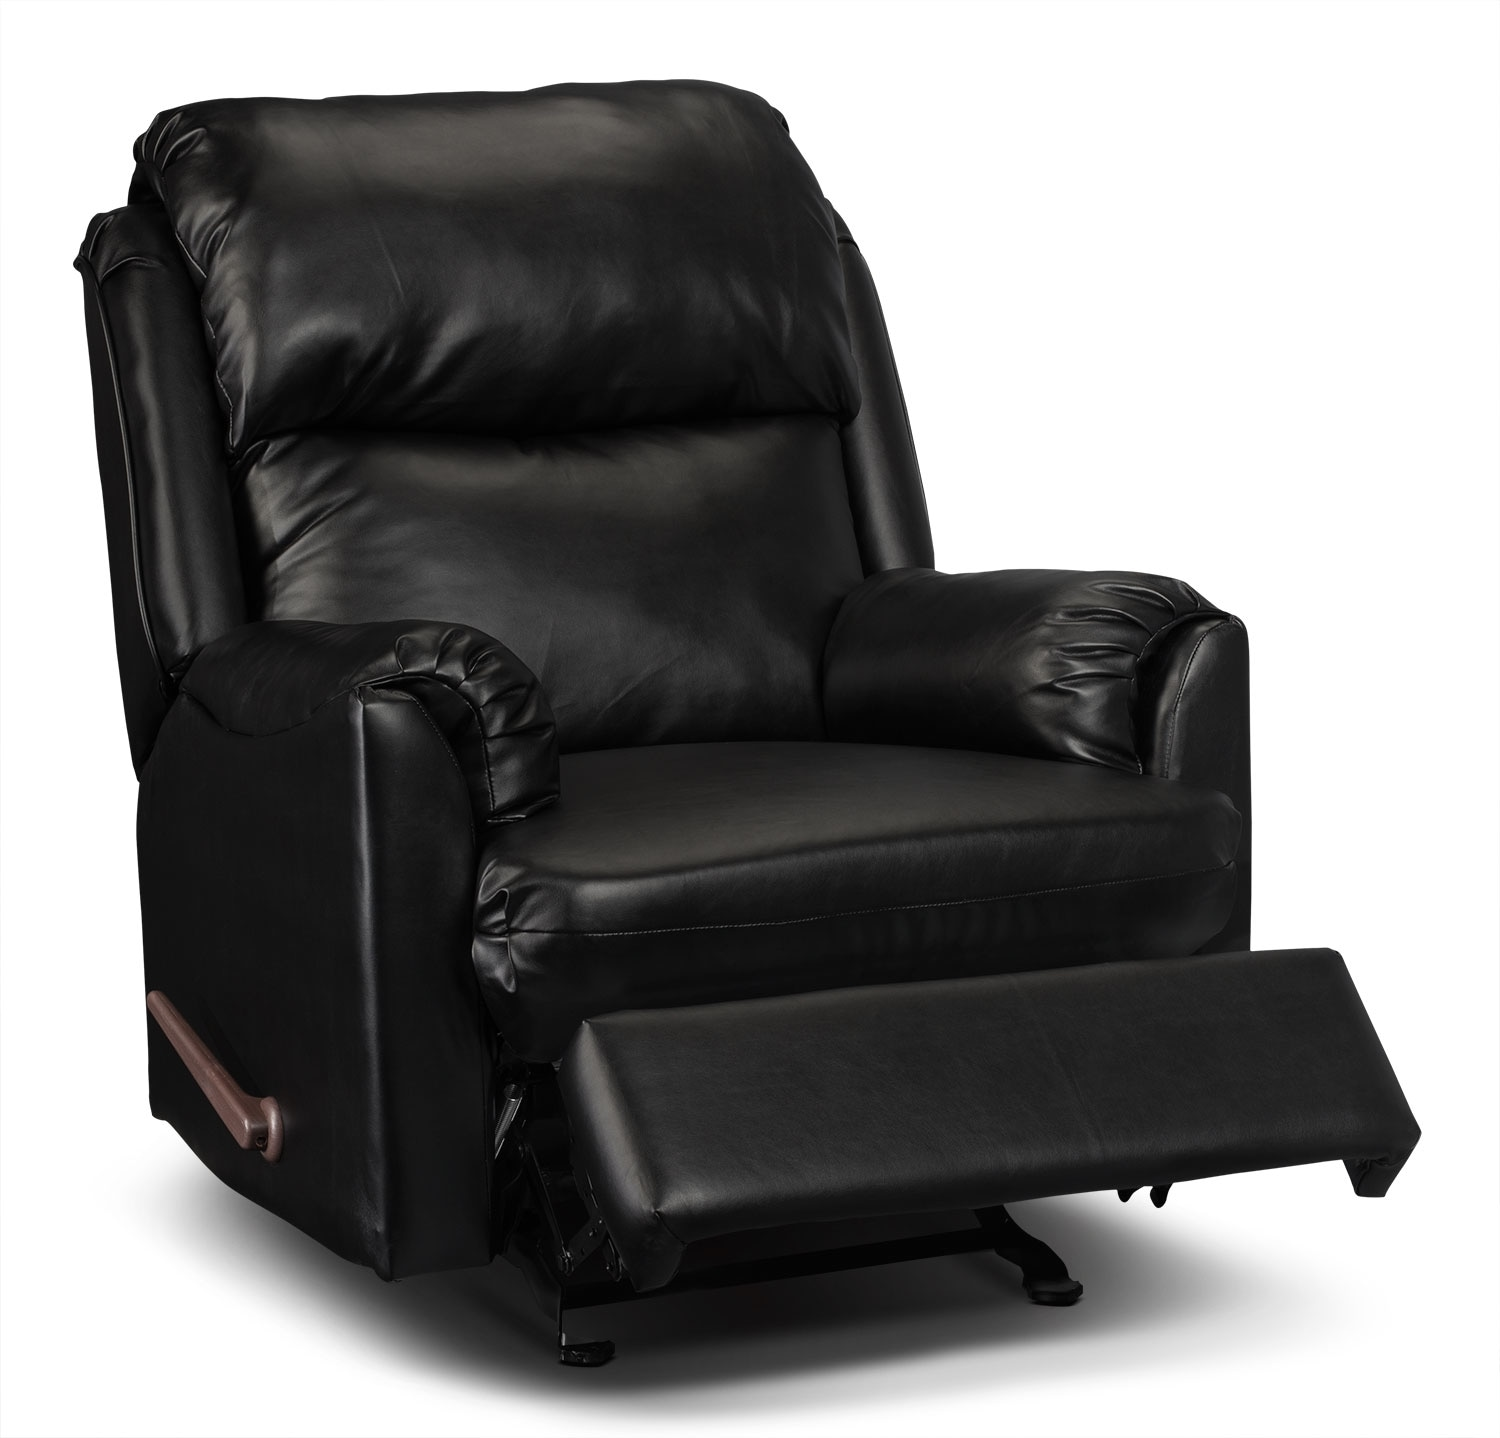 Living Room Furniture - Drogba Faux Leather Power Recliner - Black